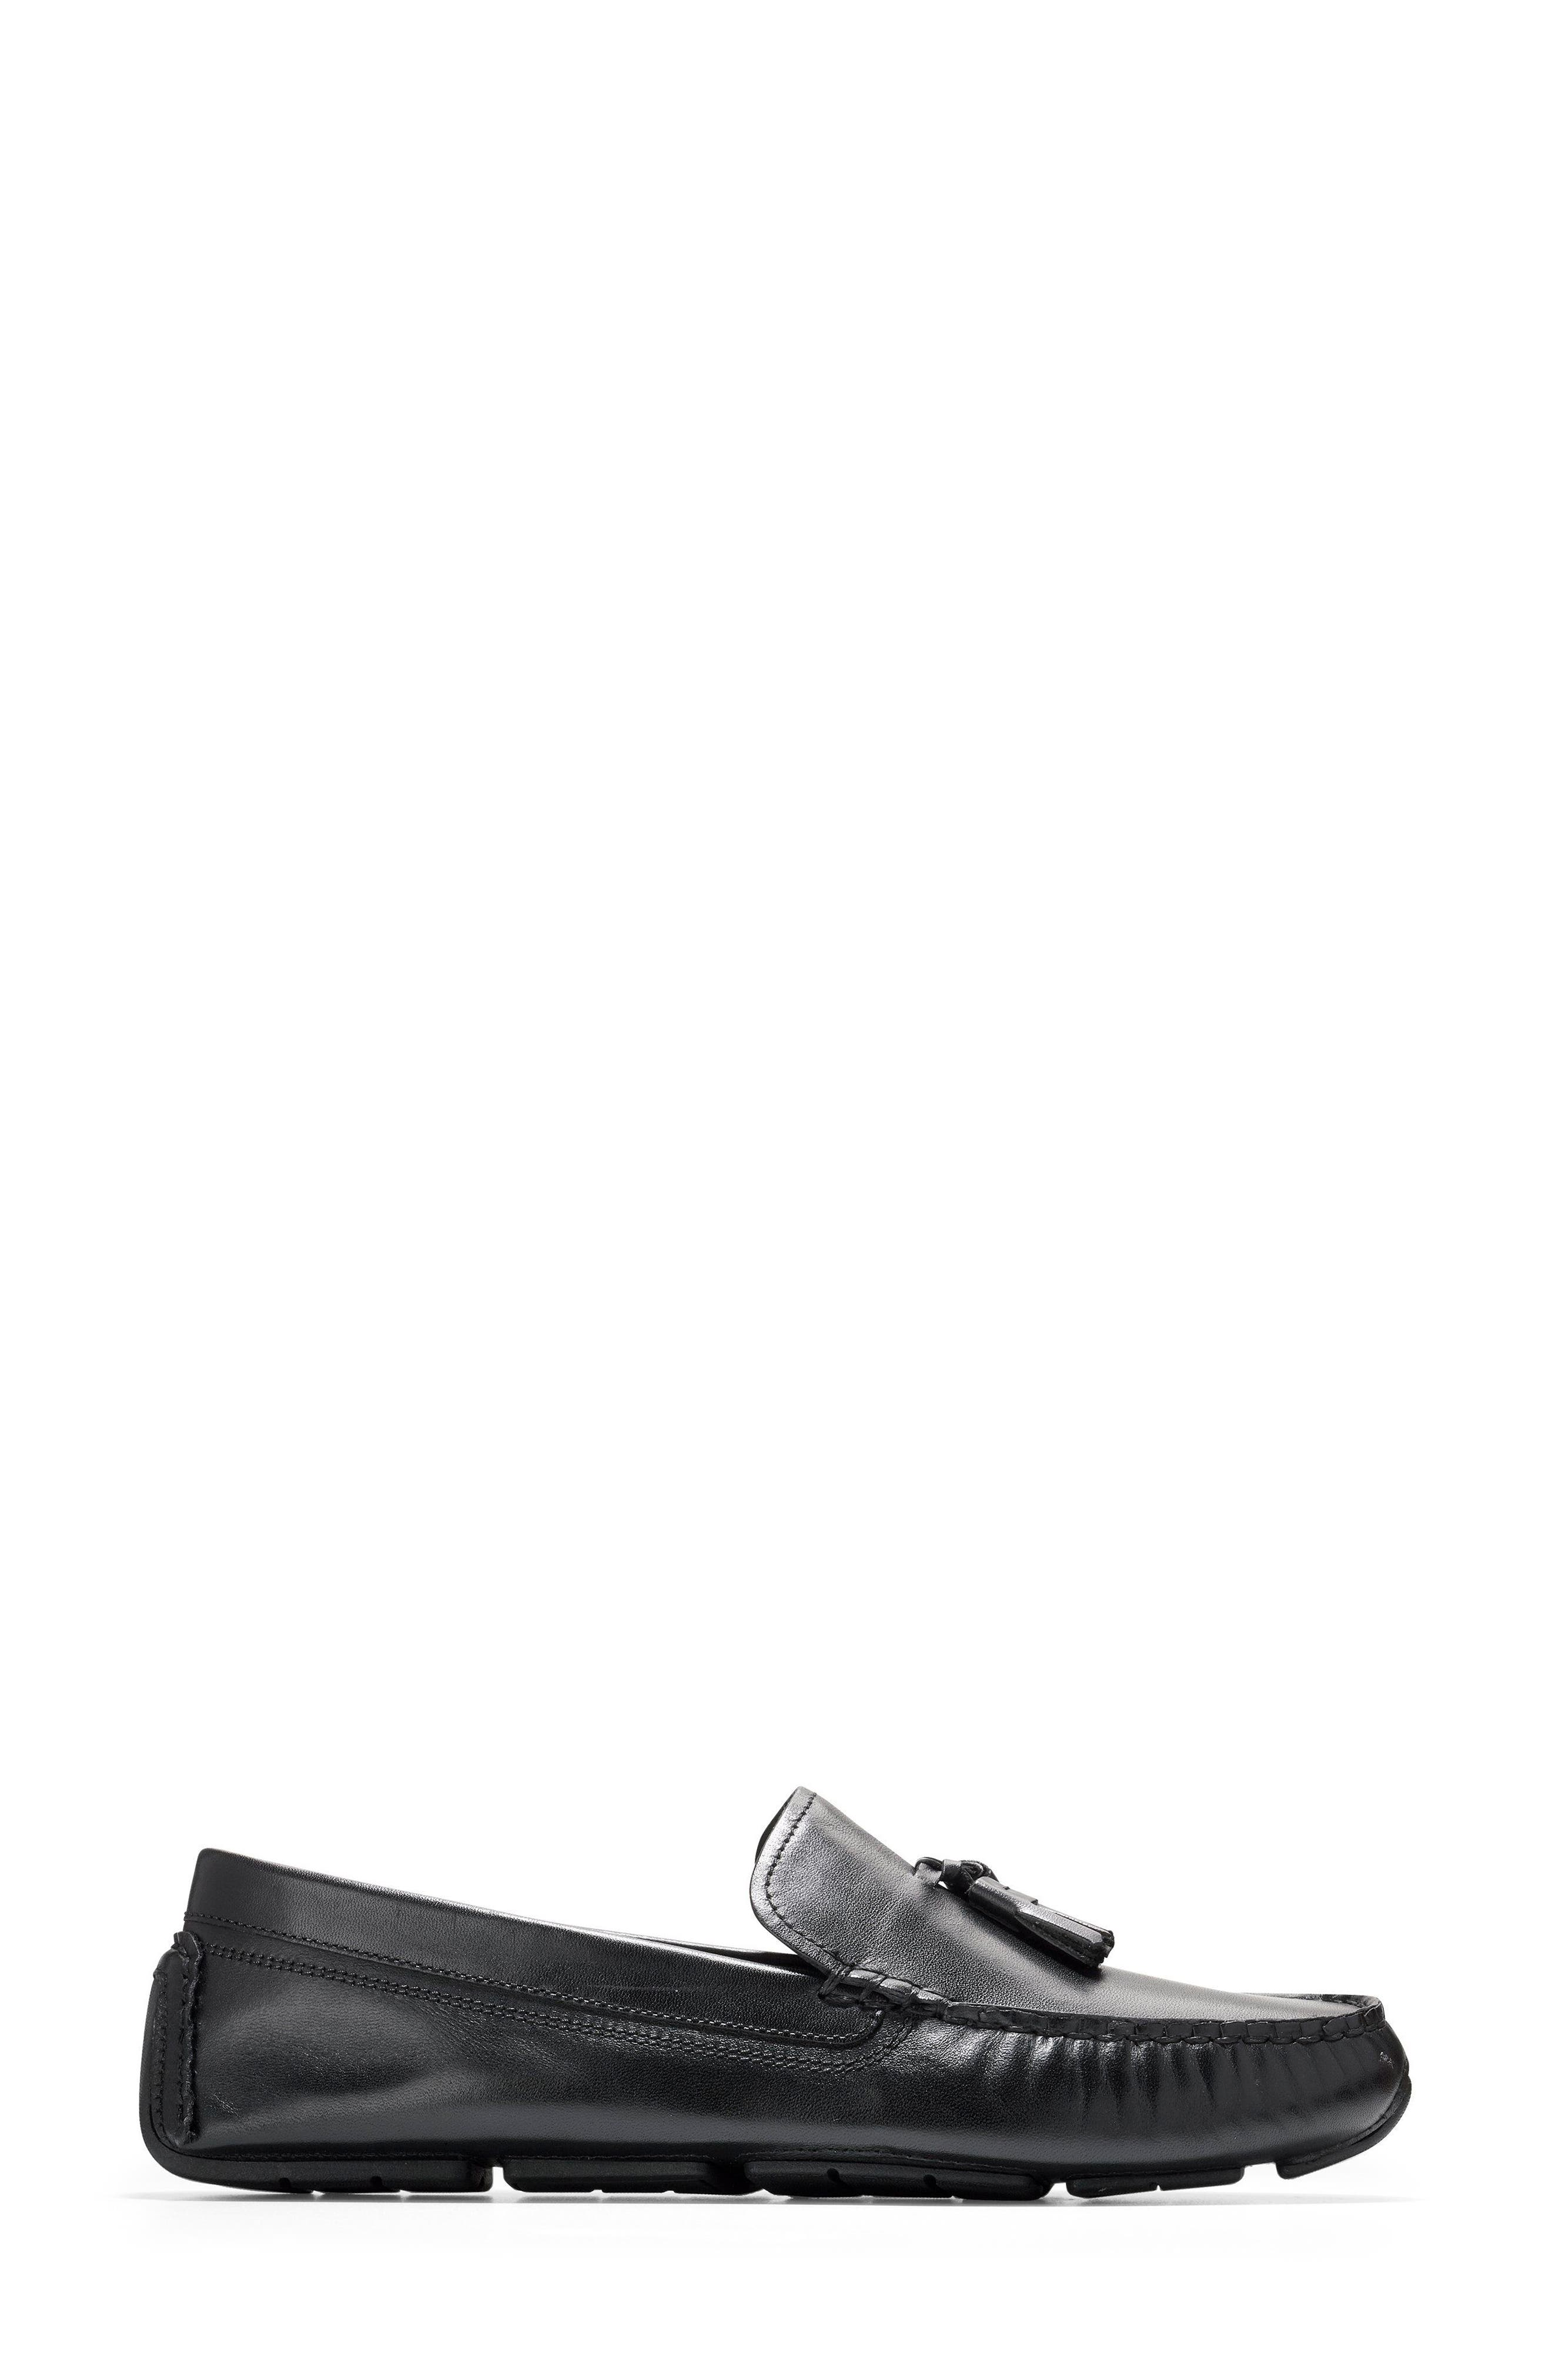 Rodeo Tassel Driving Loafer,                             Alternate thumbnail 3, color,                             001